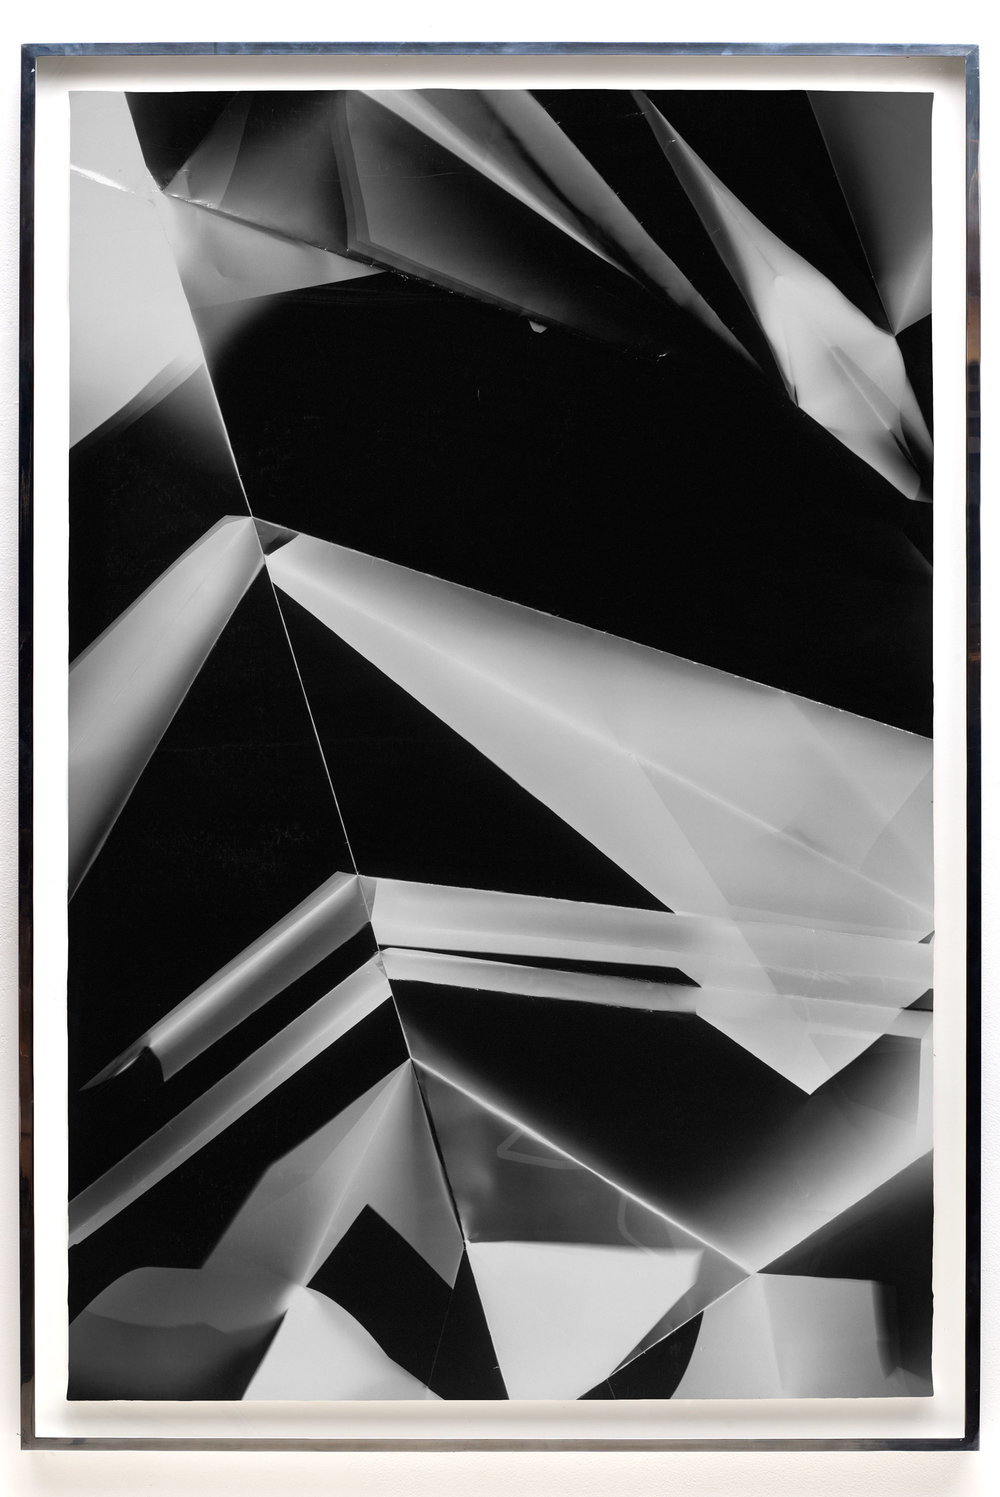 Fold (45º/135º/225º/315º directional light sources), June 27, 2008, Annandale-On-Hudson, New York, Foma Multigrade Fiber   2009  Black and white fiber based photographic paper  67 1/2 x 46 3/4 inches   Black and White Directional Folds, 2006–2014    Legibility on Color Backgrounds, 2009